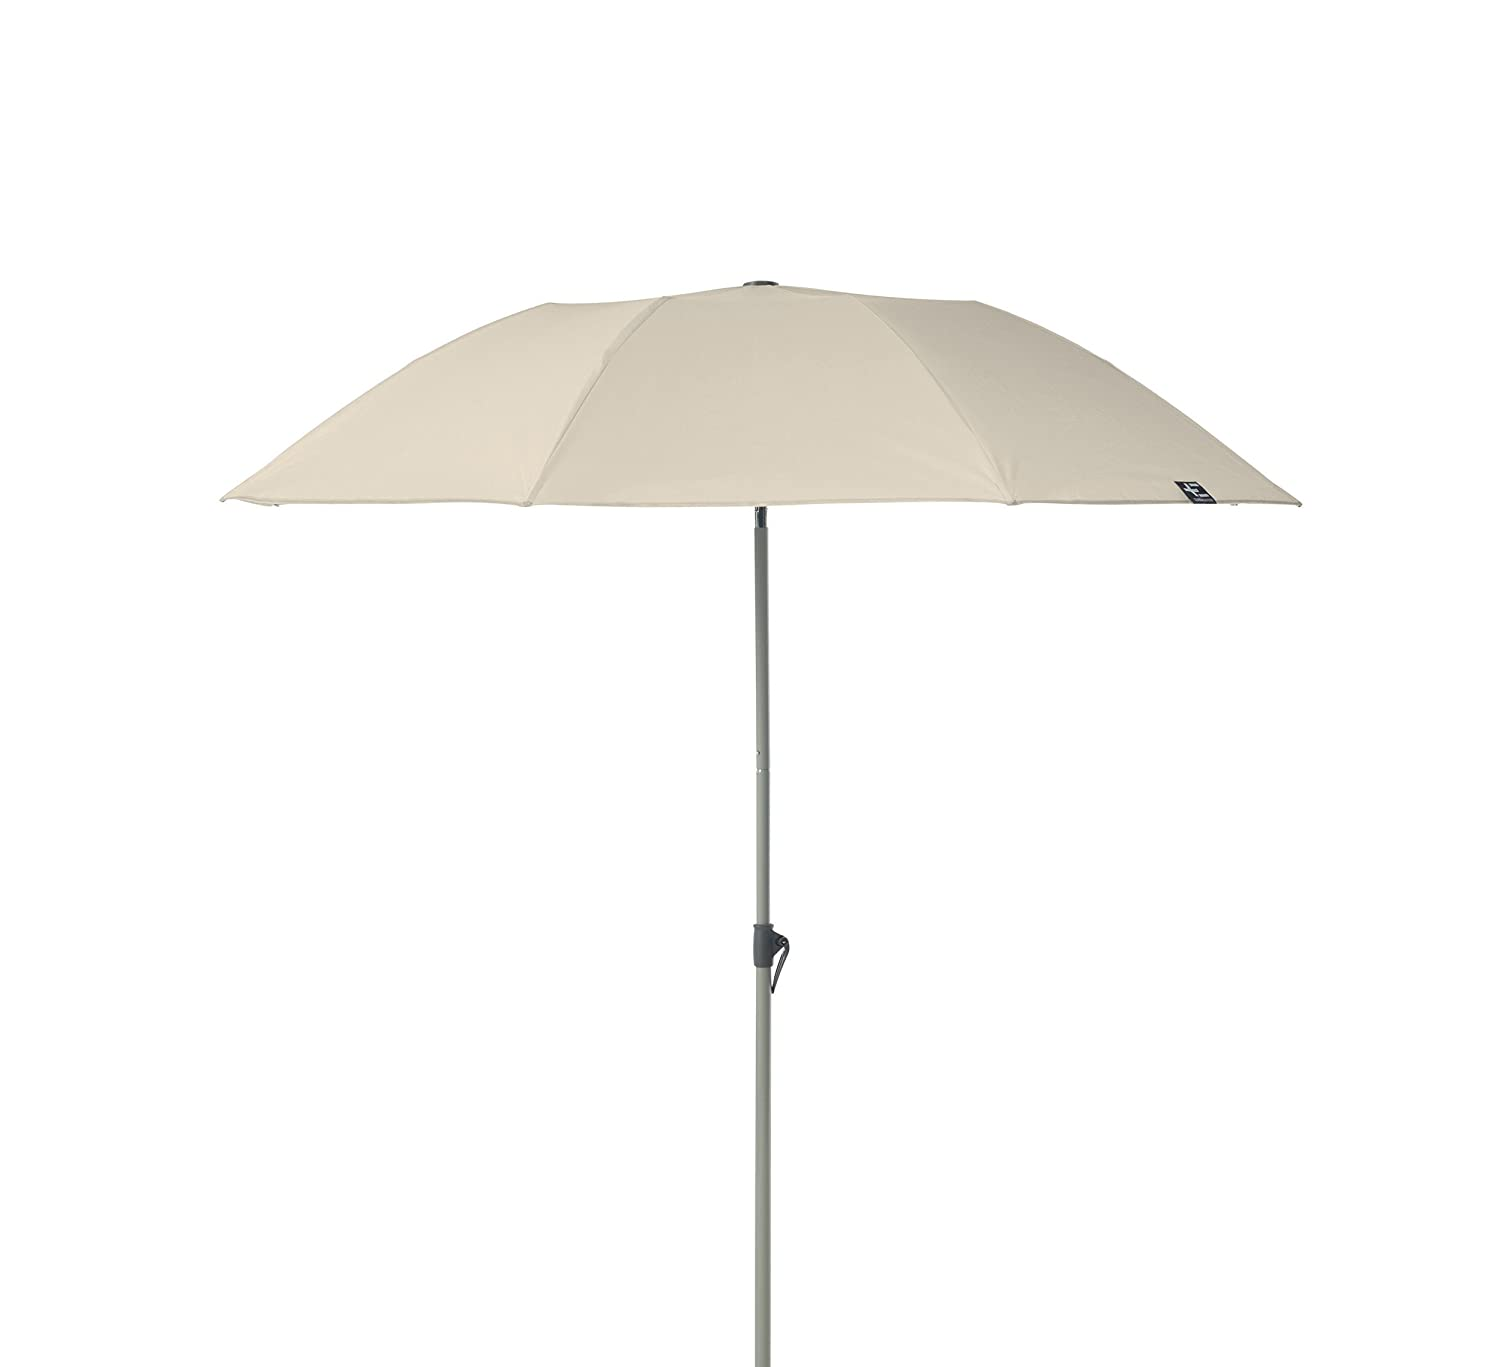 Terra Nation - Parasol - RUA Kiri - Ø 165 cm - Sable TES2K|#Terra Nation 7267276